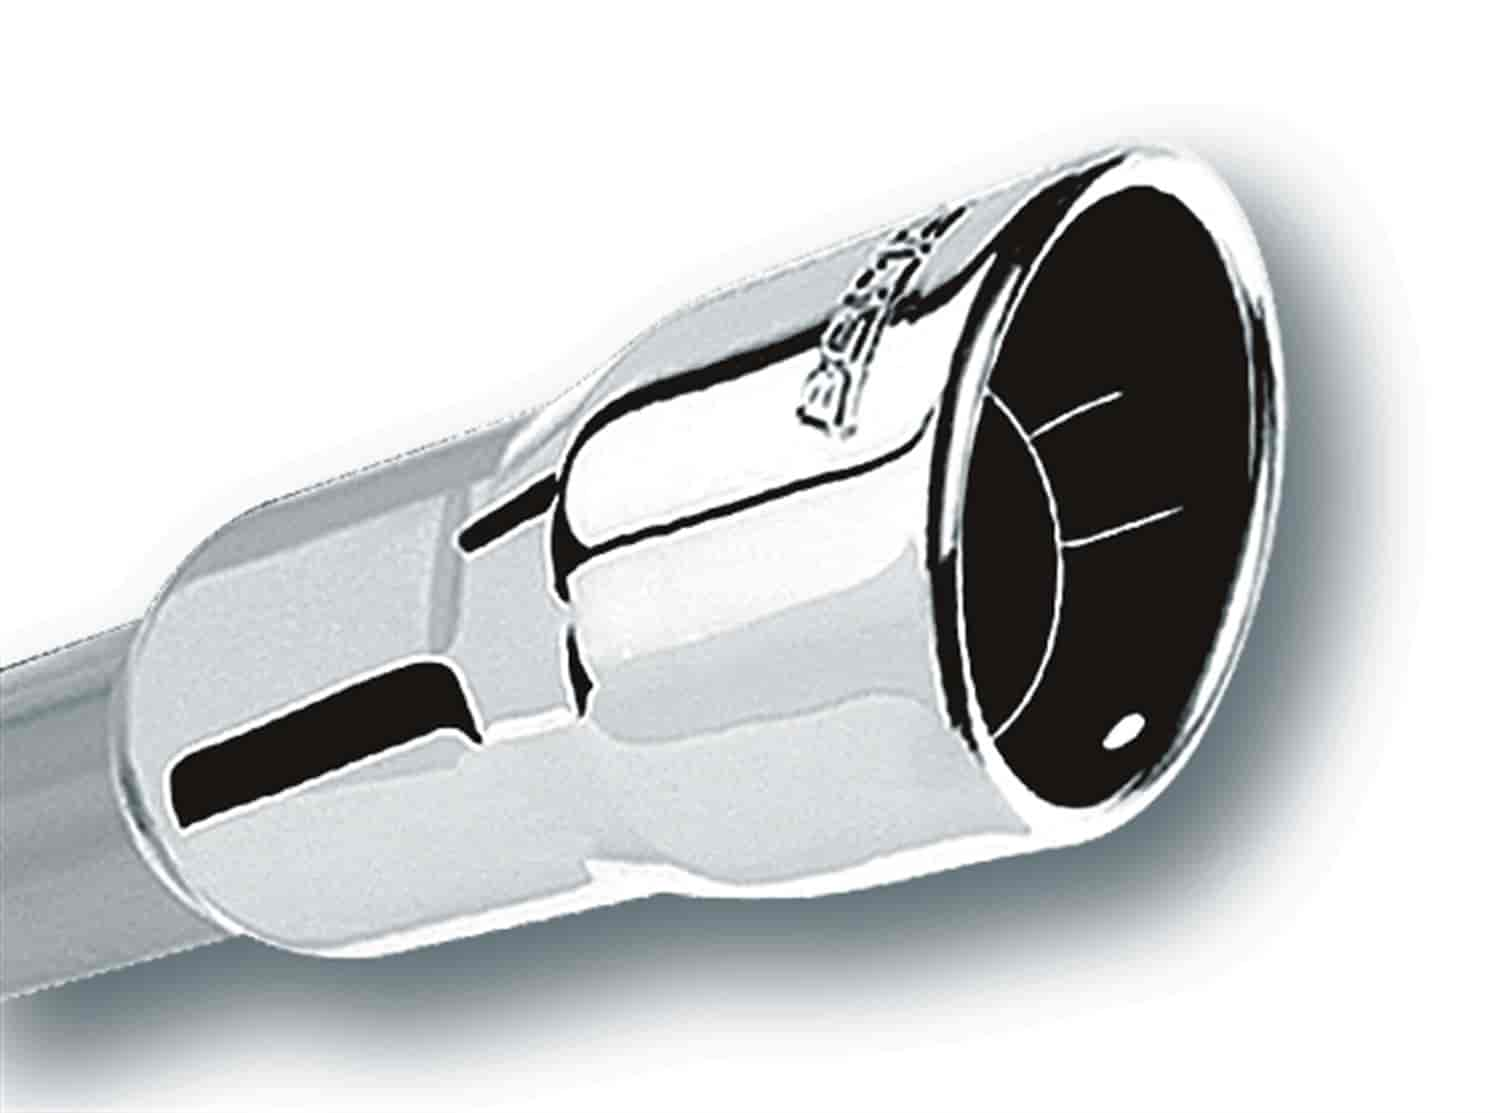 Borla 20251 - Borla Exhaust Tips